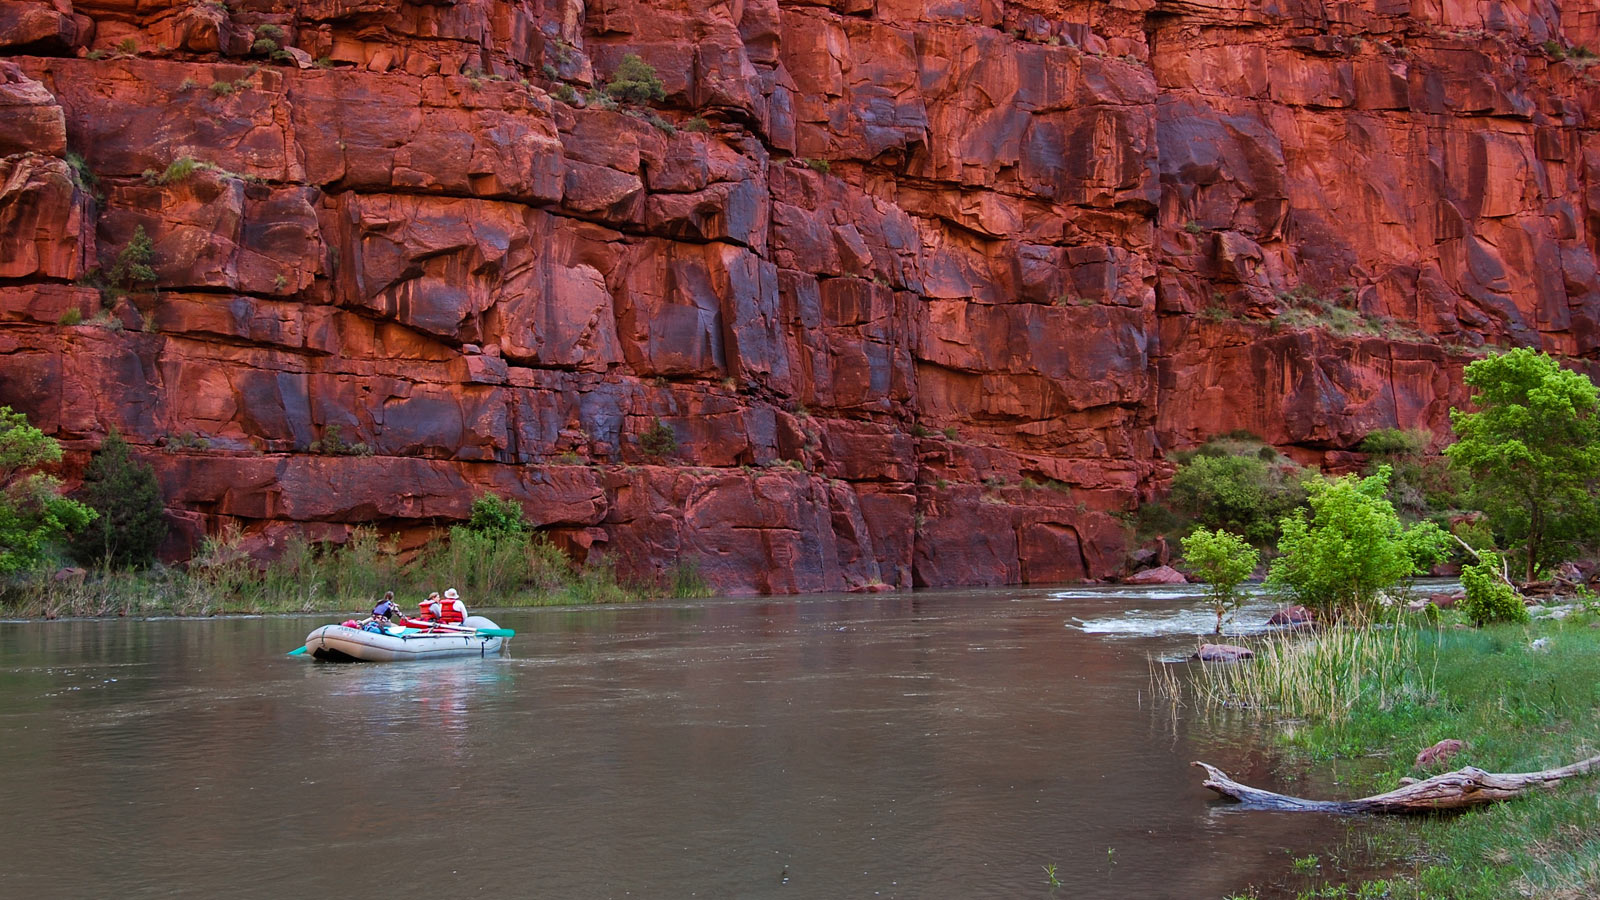 Whitewater Rafting on the Green River through Lodore Canyon